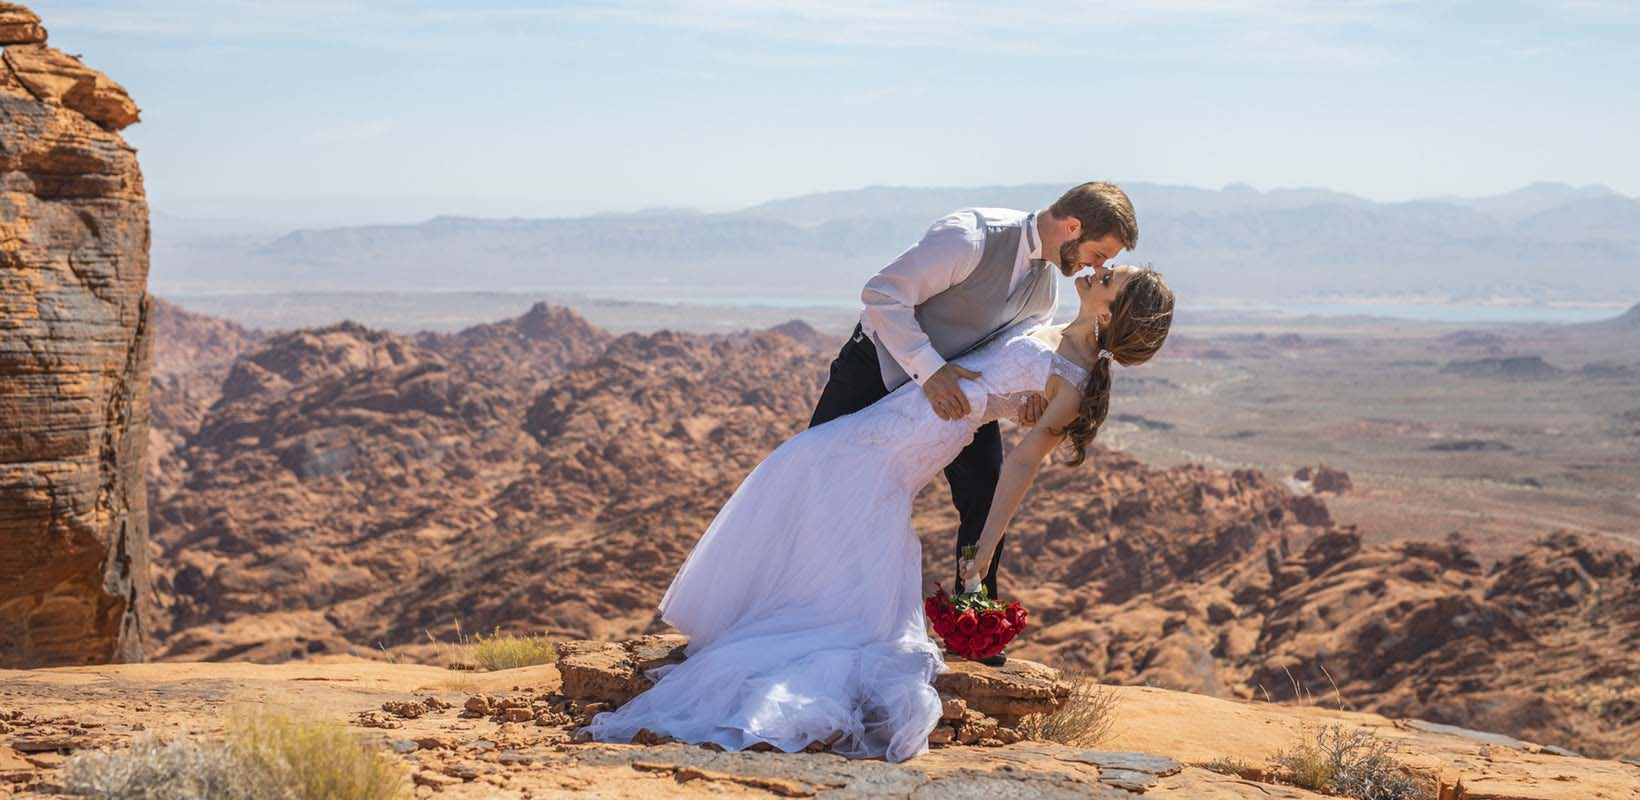 Valley of Fire wedding package with limousine from Las Vegas